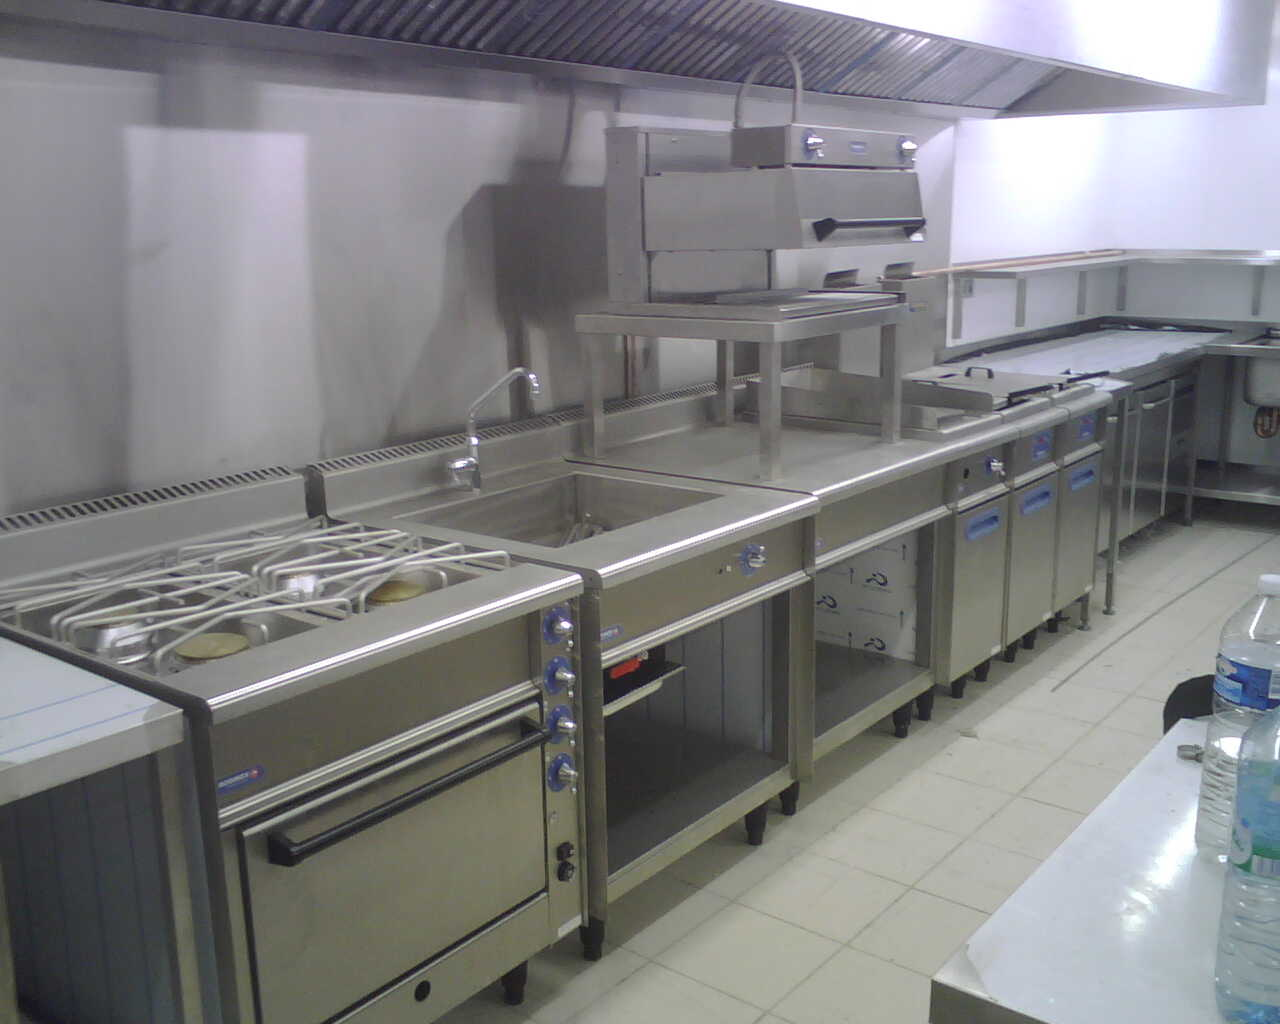 St Tropez Kitchen 3.jpg